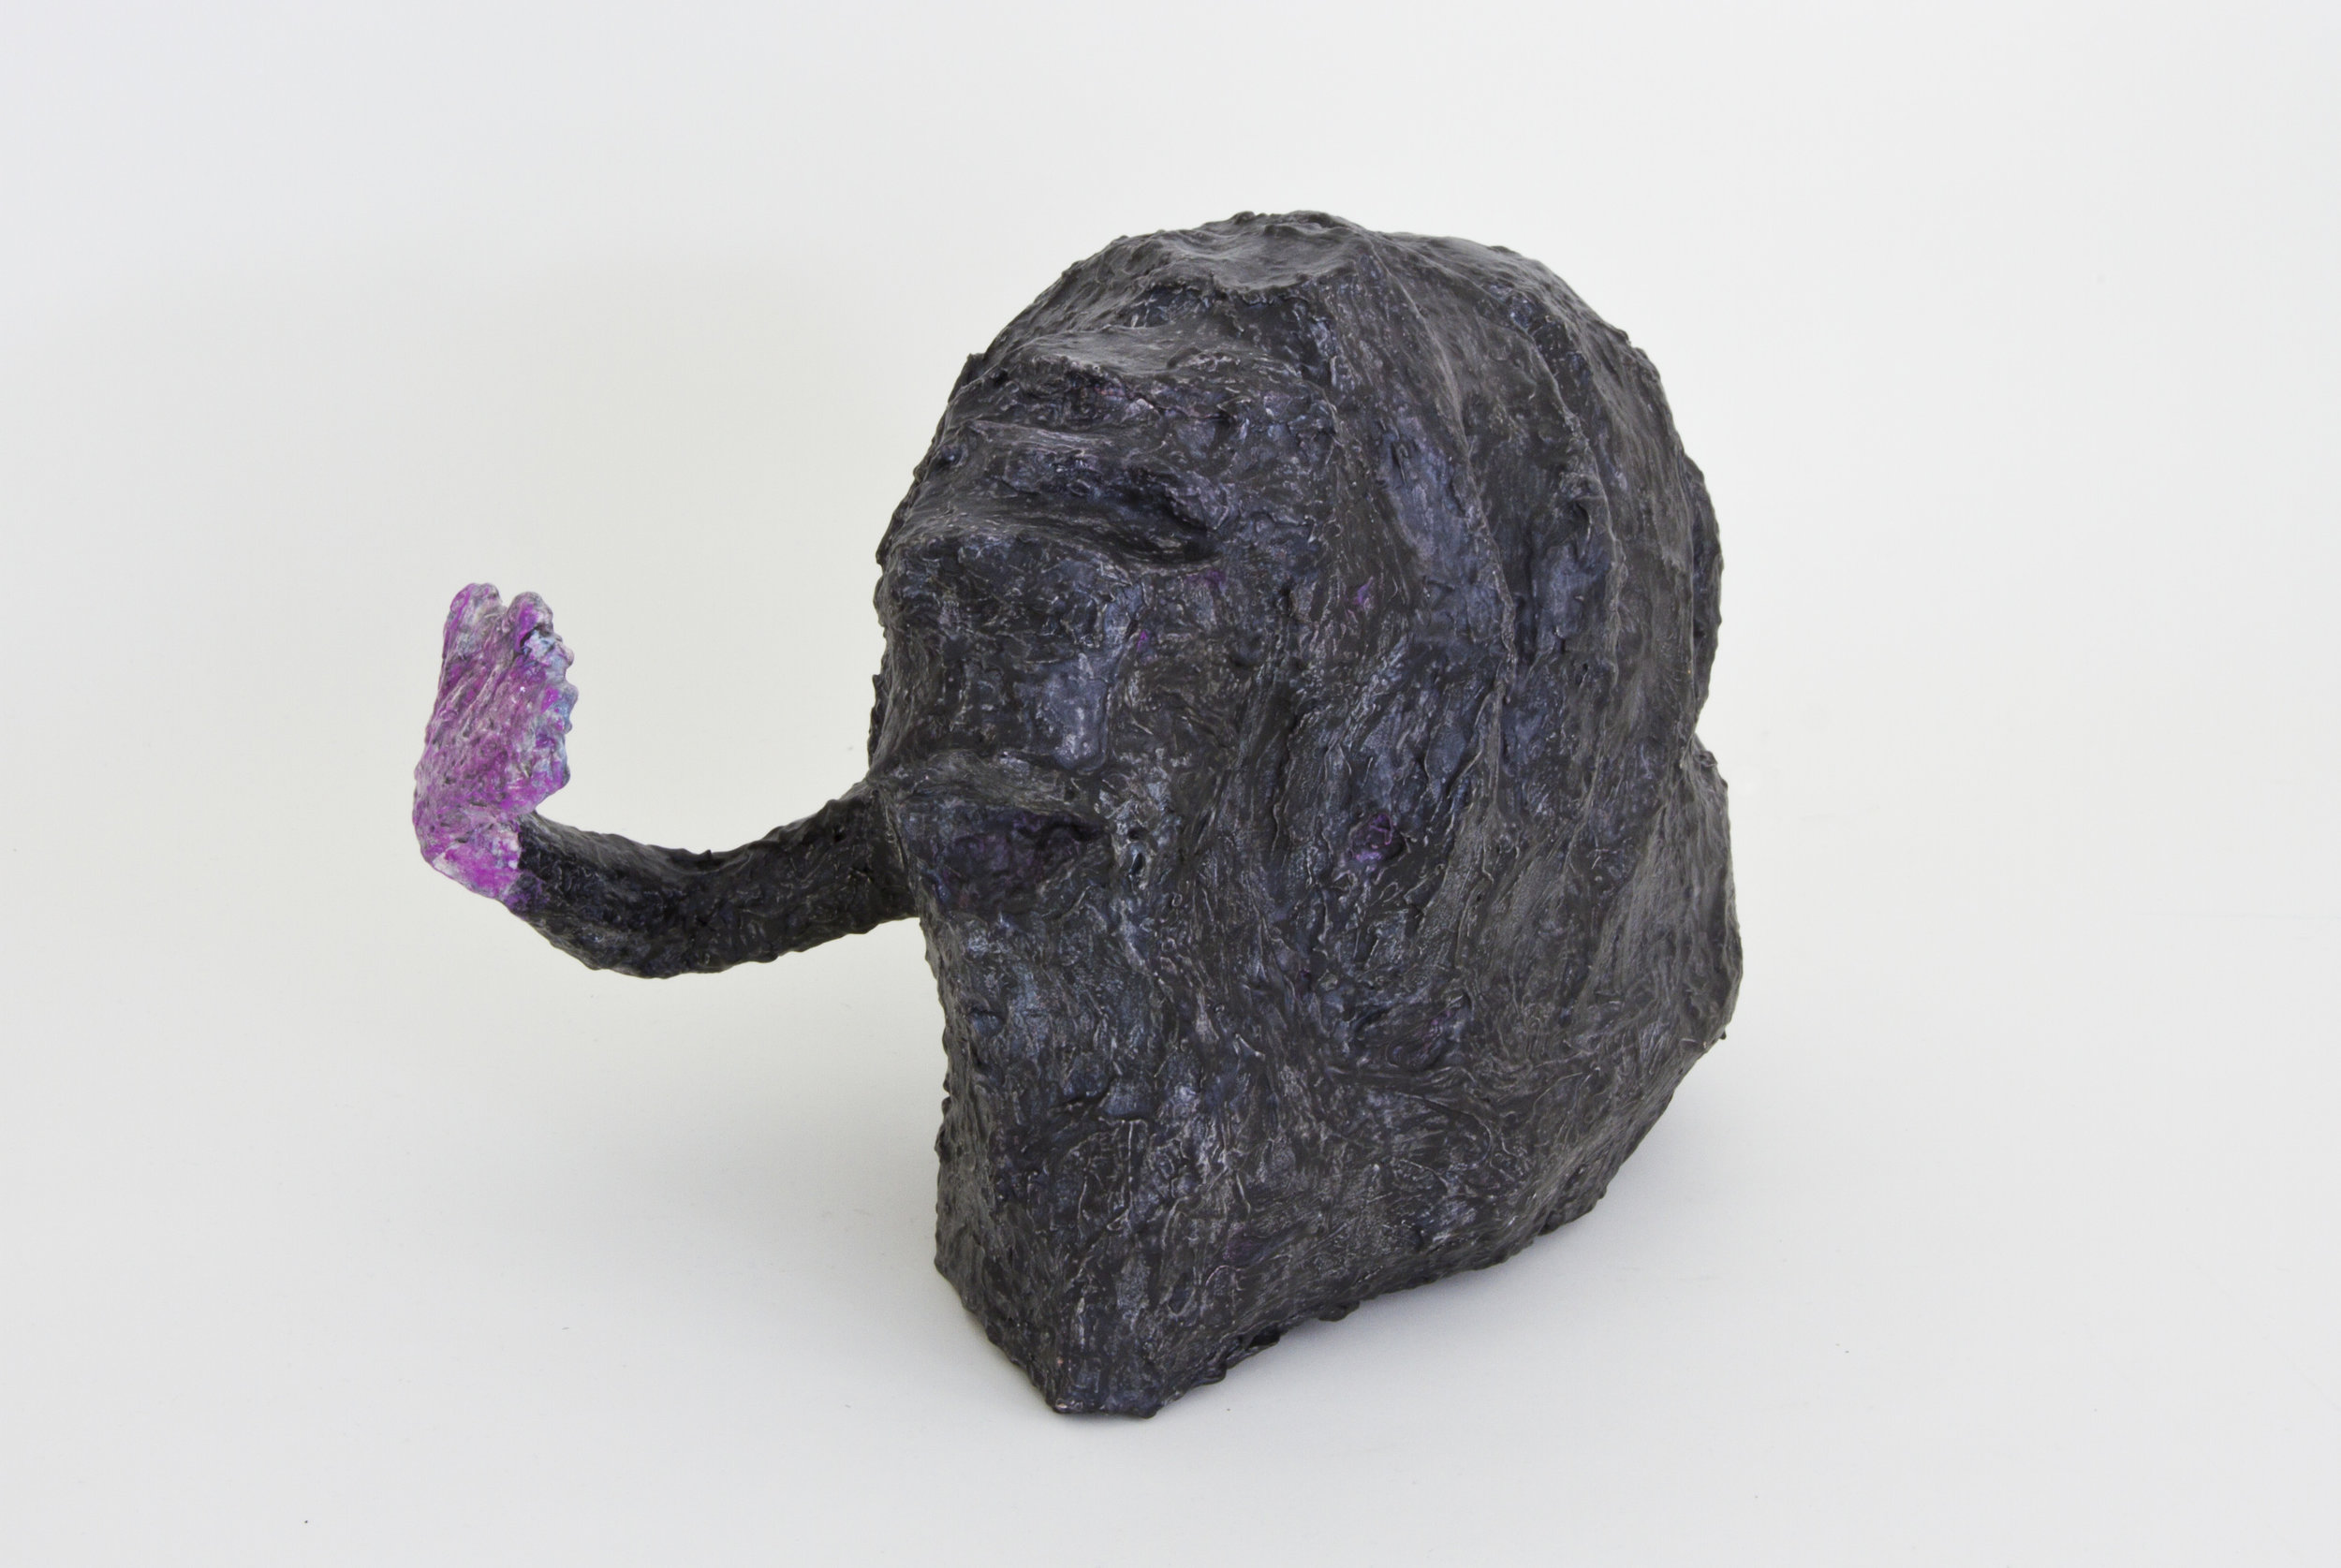 Black Mass and Arm, 2015, Plaster, Acrylic Paint, Mixed Materials, 16x16x19 inches